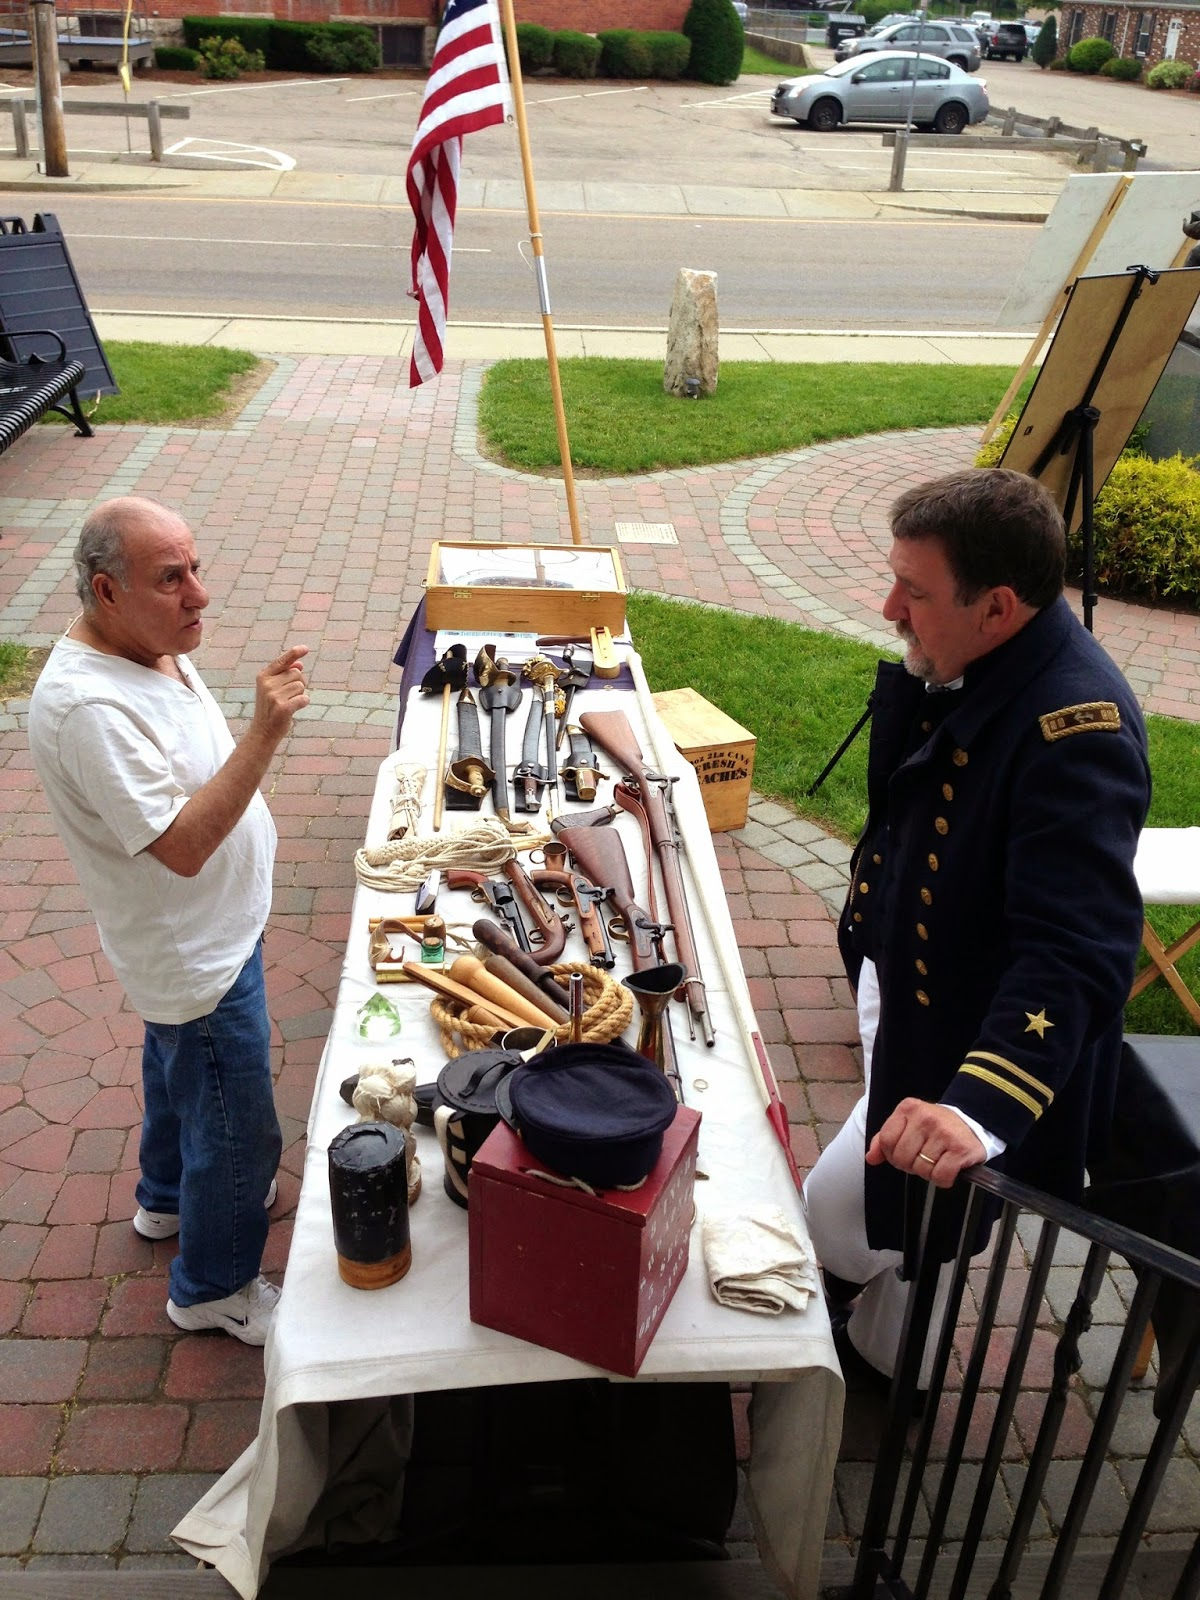 discussing the Civil War display at Franklin Historical Museum